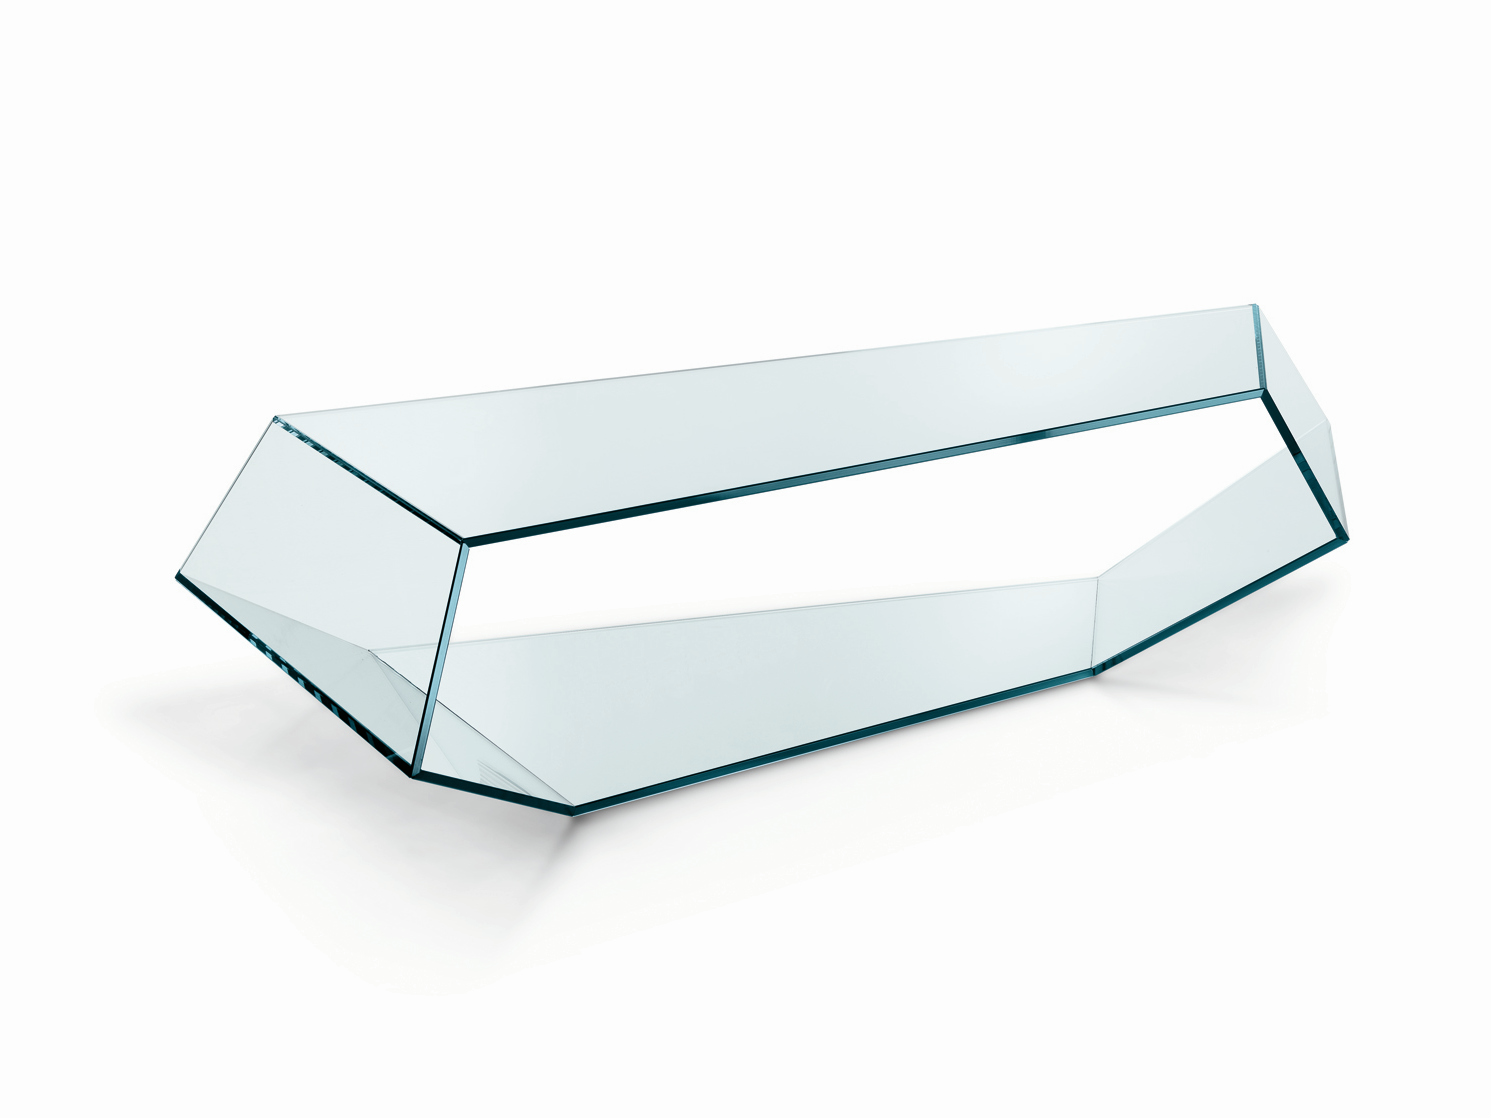 Table basse en verre dekon 2 by t d tonelli design design karim rashid - Table basse design en verre ...